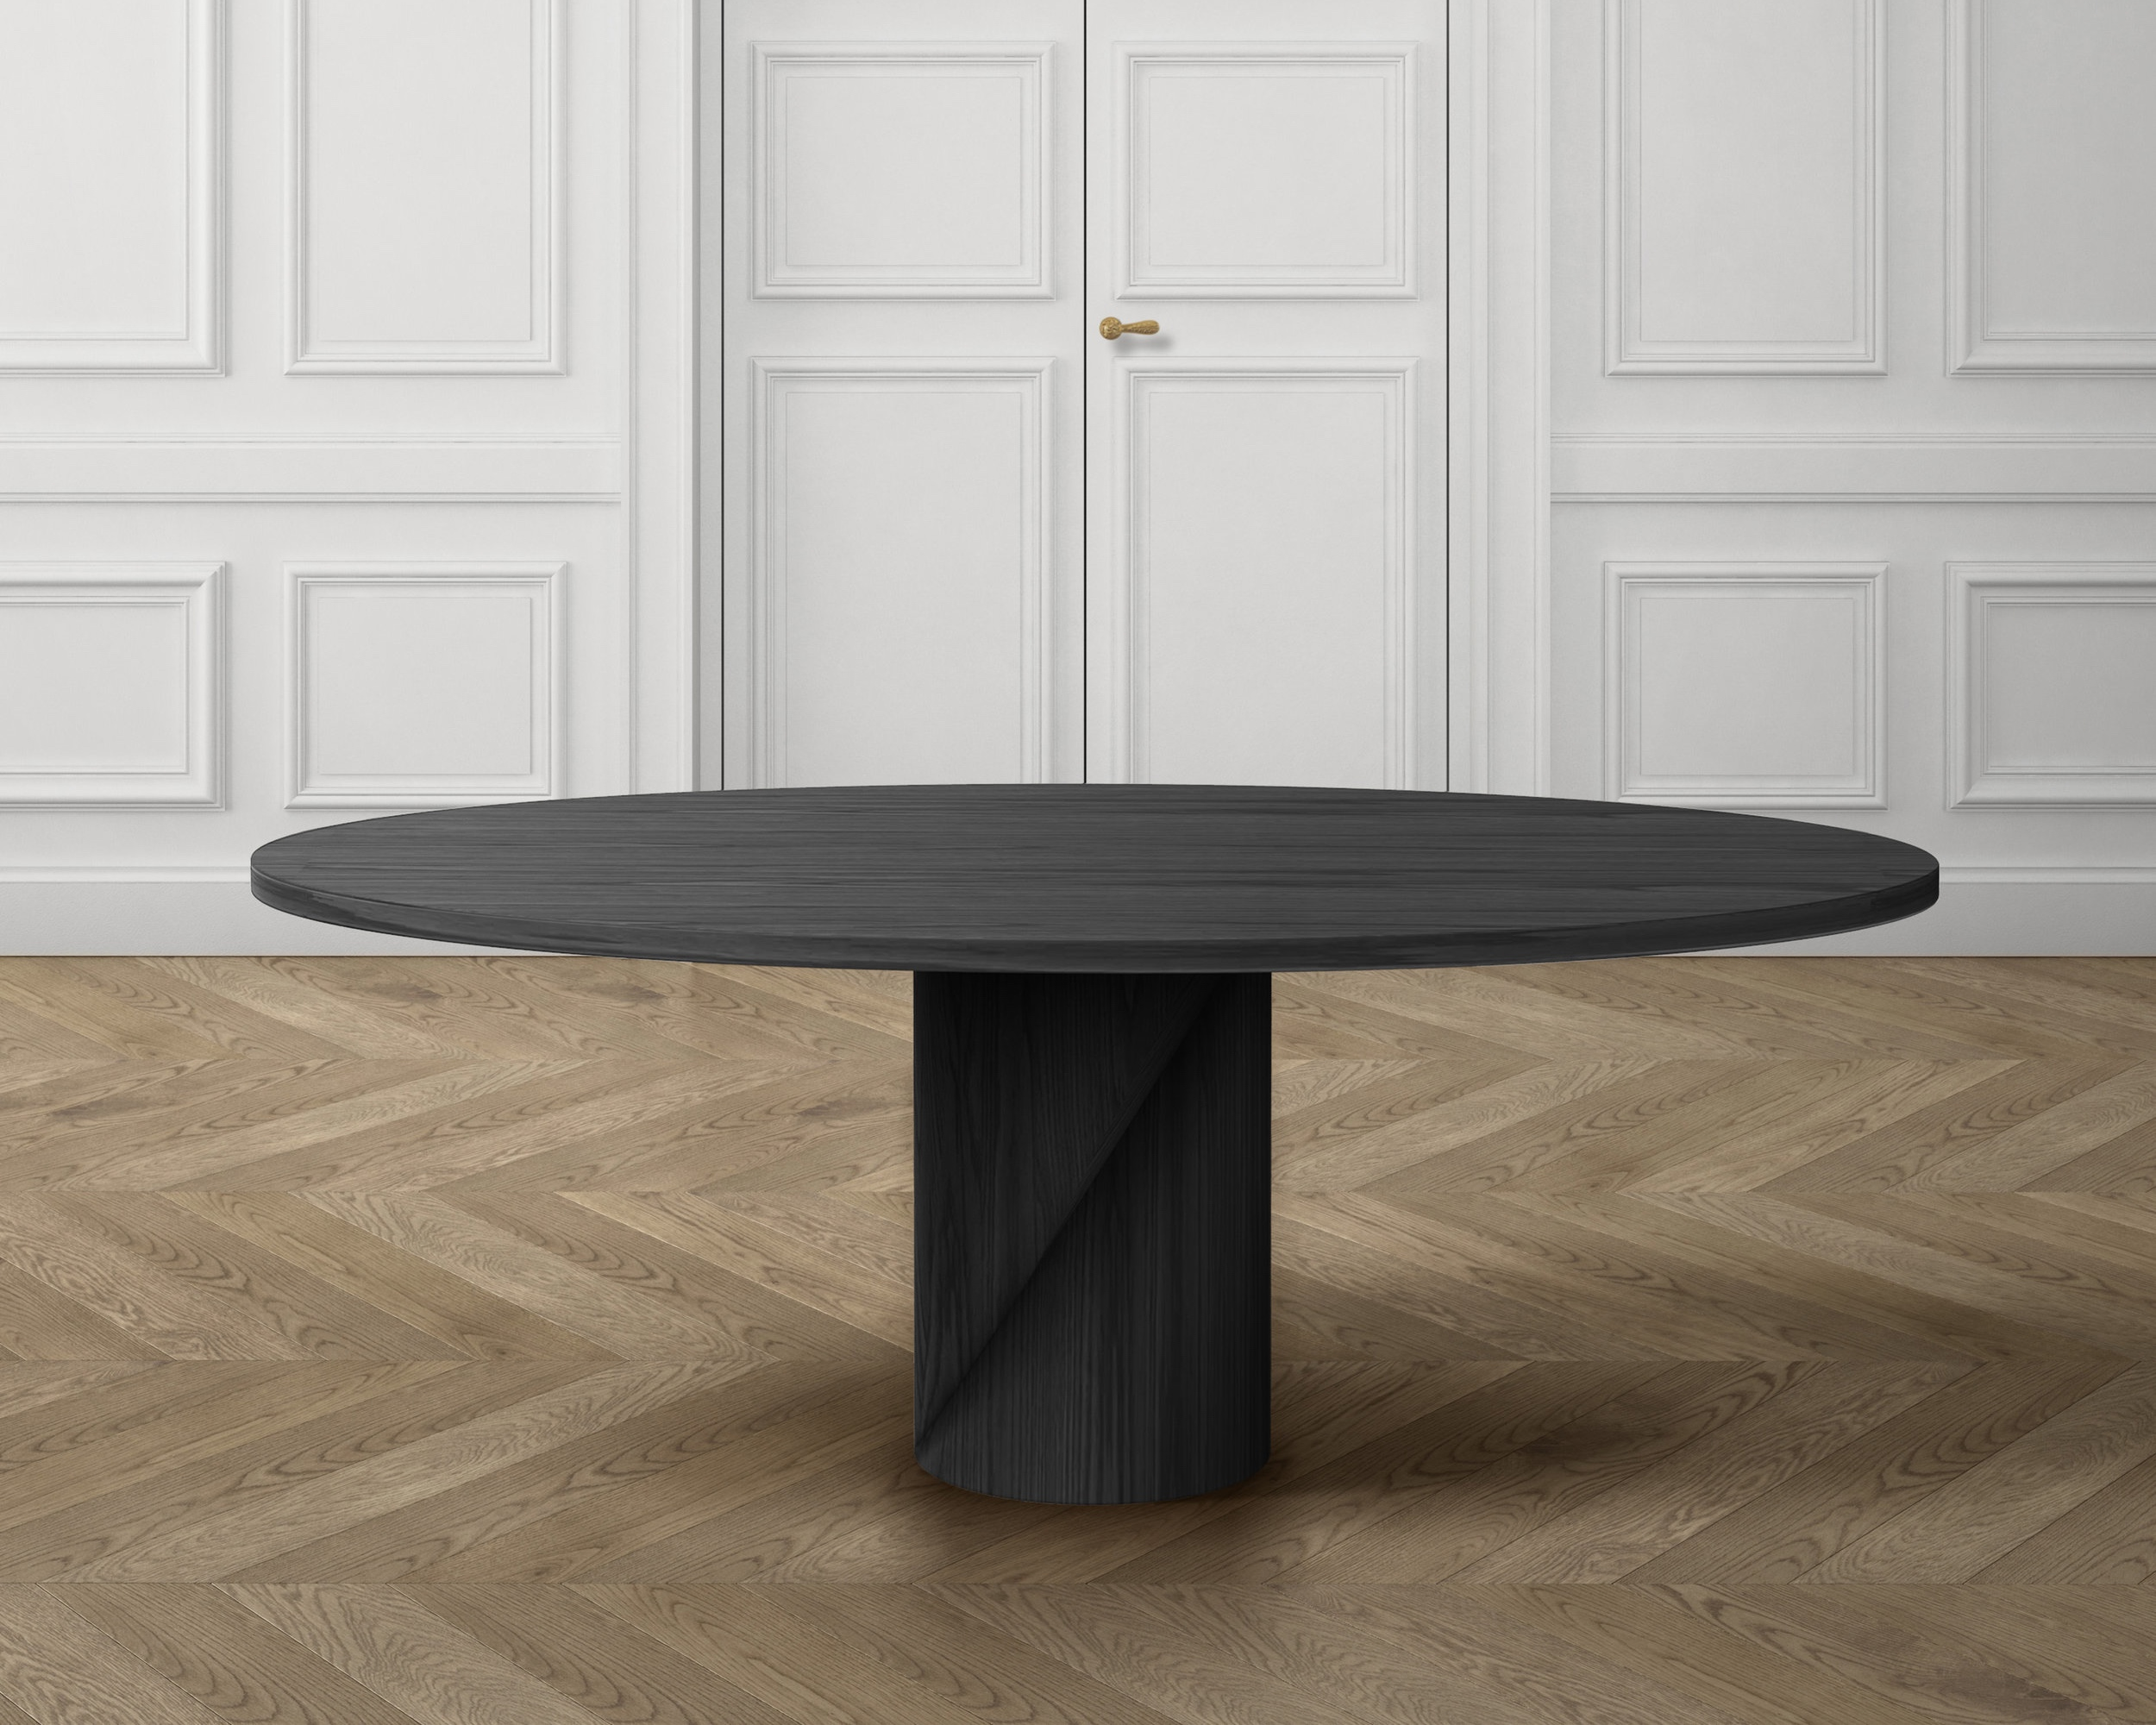 ForestGiaconia_Archimobilier_Table02_H.jpg